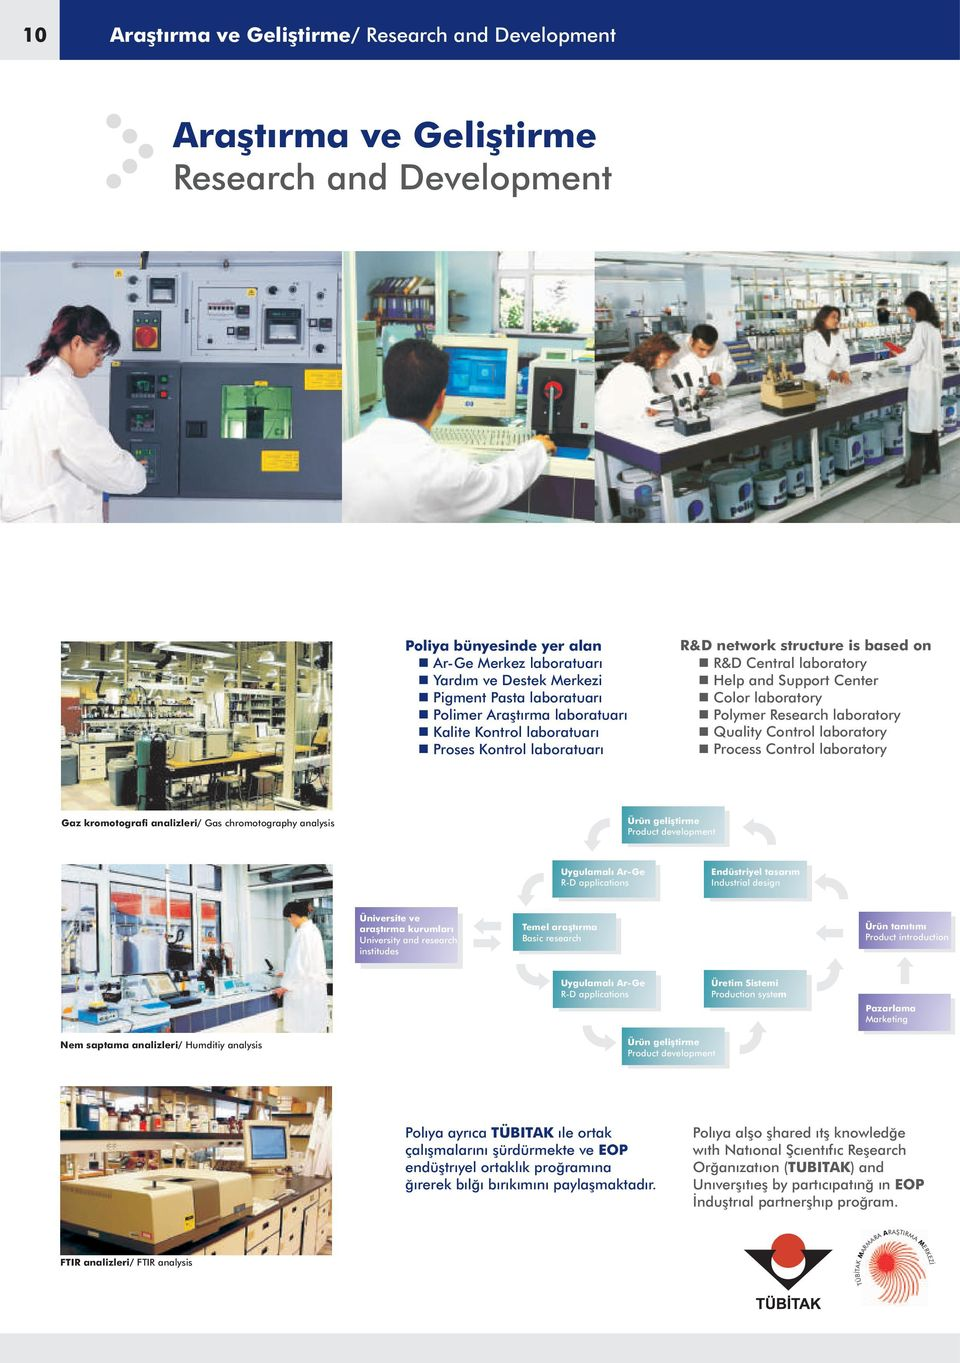 Polymer Research laboratory Quality Control laboratory Process Control laboratory Gaz kromotografi analizleri/ Gas chromotography analysis Ürün geliþtirme Product development Uygulamalý Ar-Ge R-D